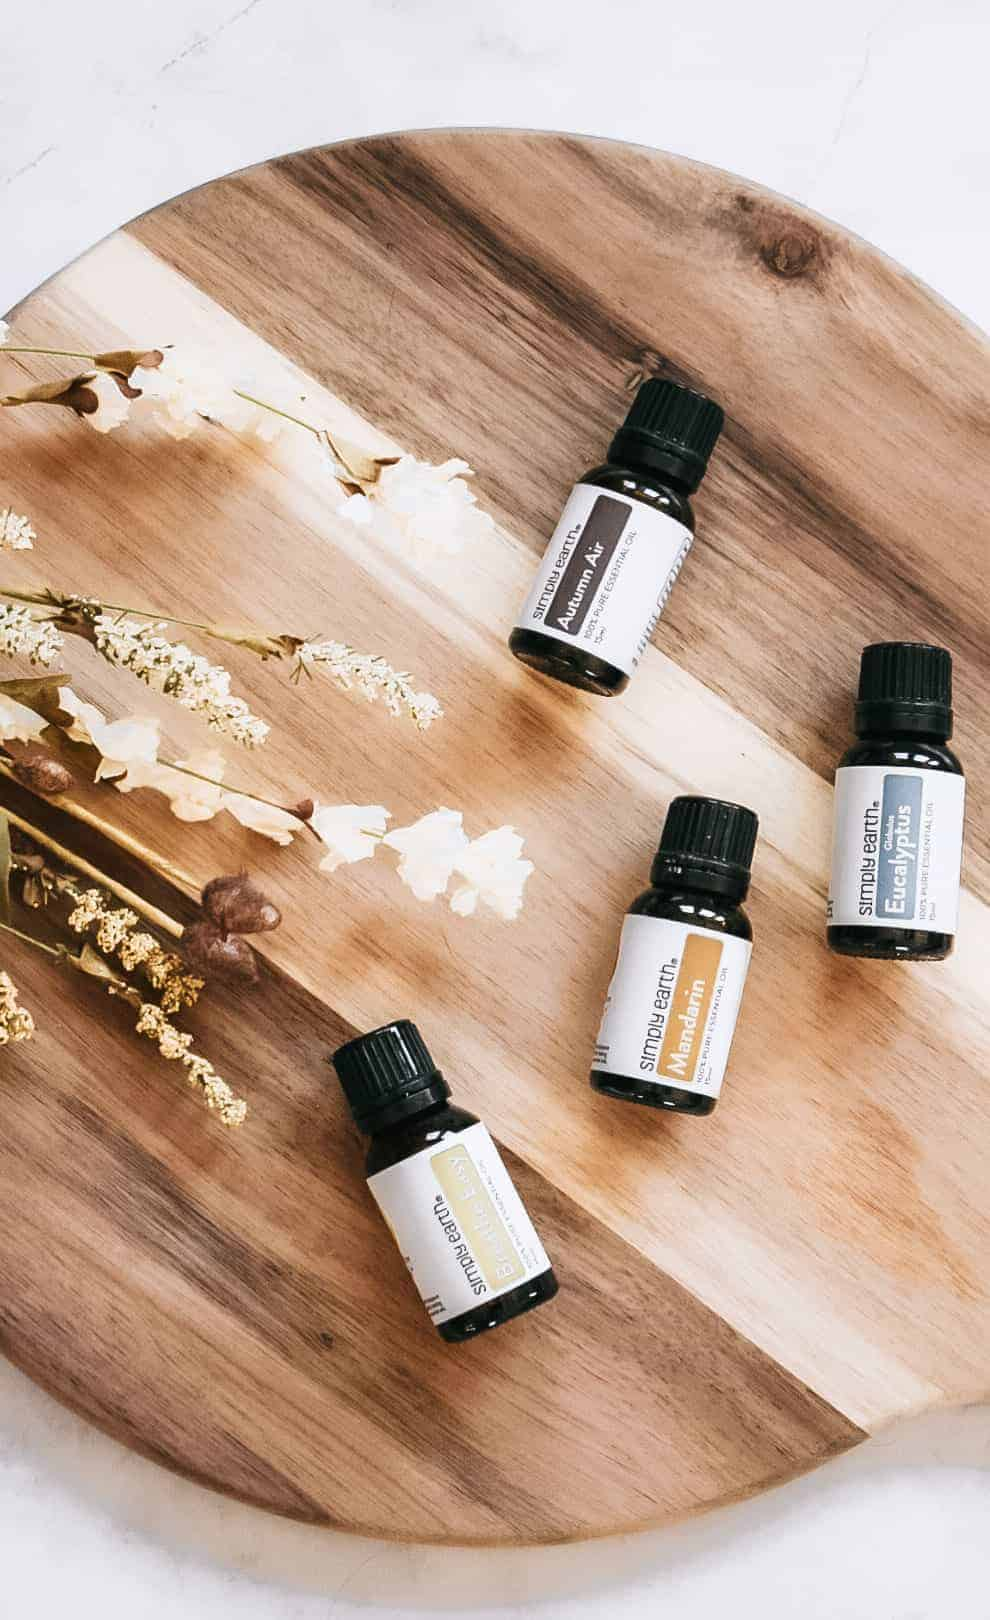 Simply Earth essential oils lying on wooden cutting board next to fall foliage